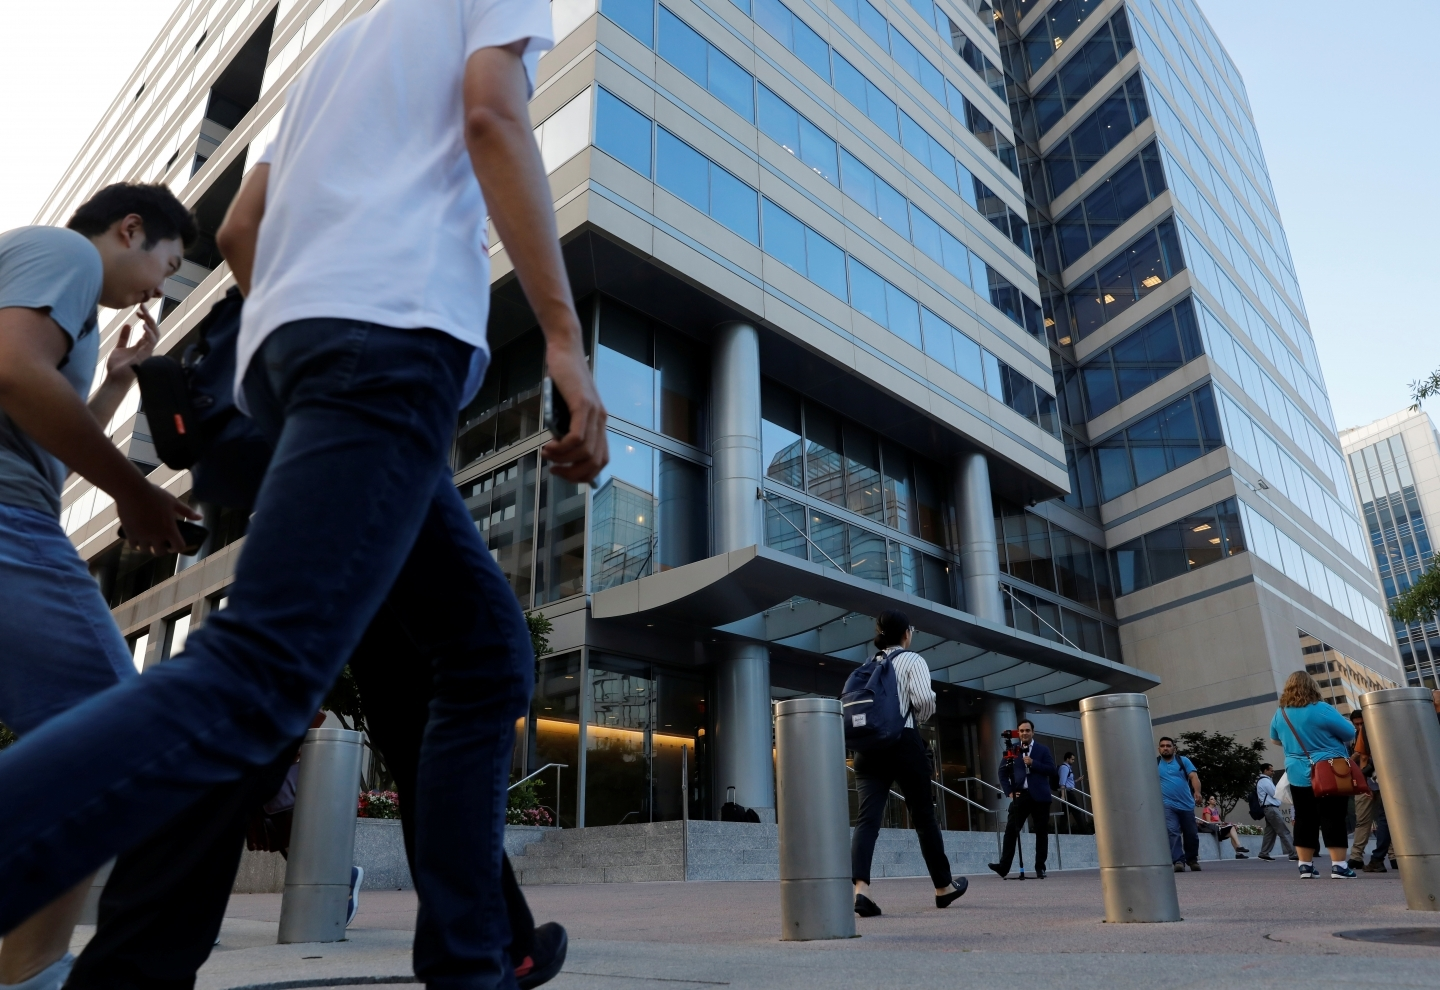 People walk past the International Monetary Fund headquarters building in Washington. (Reuters/Yuri Gripas)